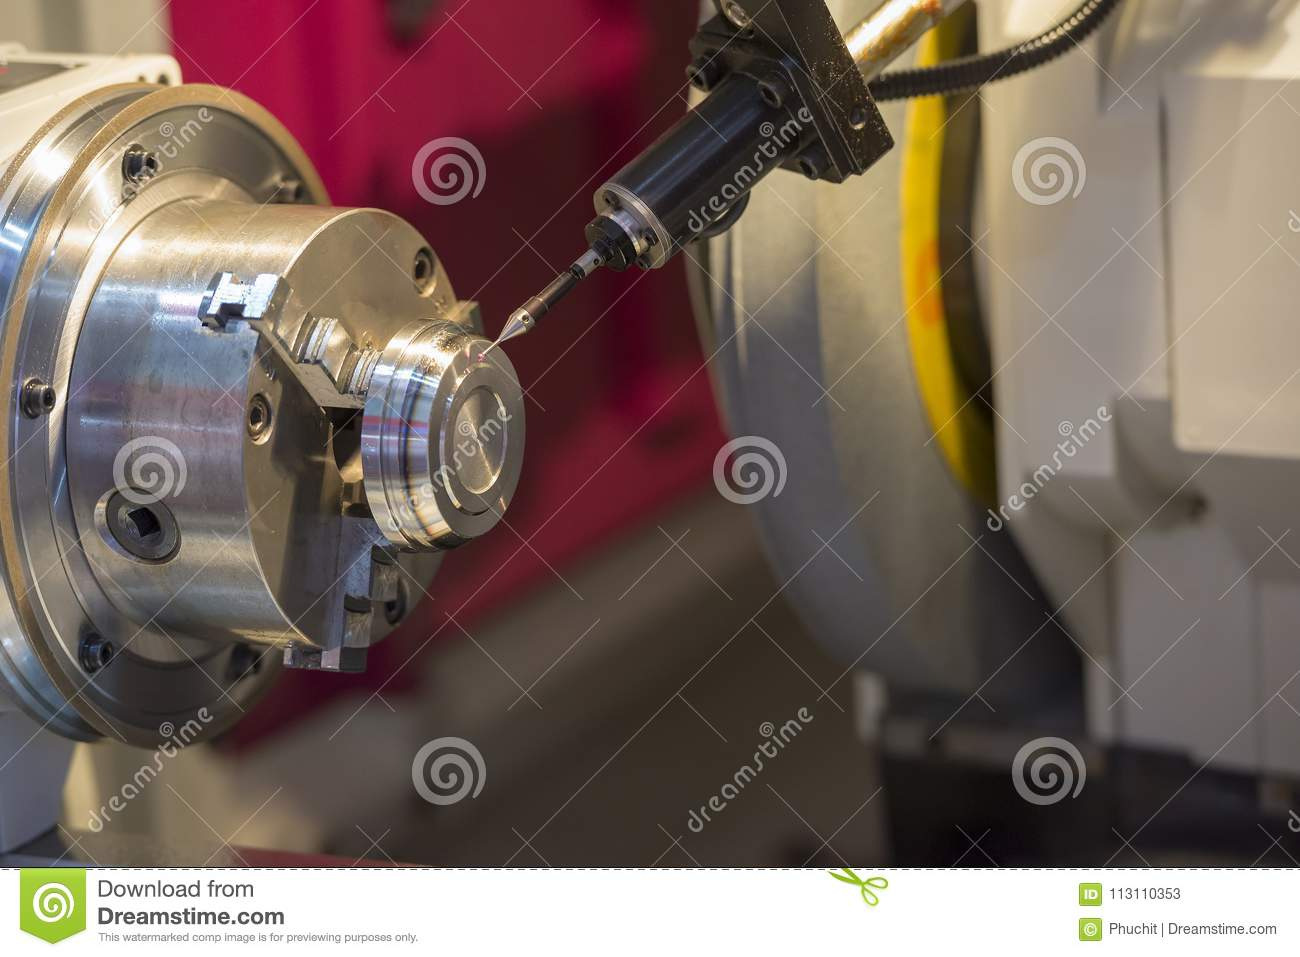 The CNC Lathe Machine Cutting The Metal Part Stock Image - Image of ...